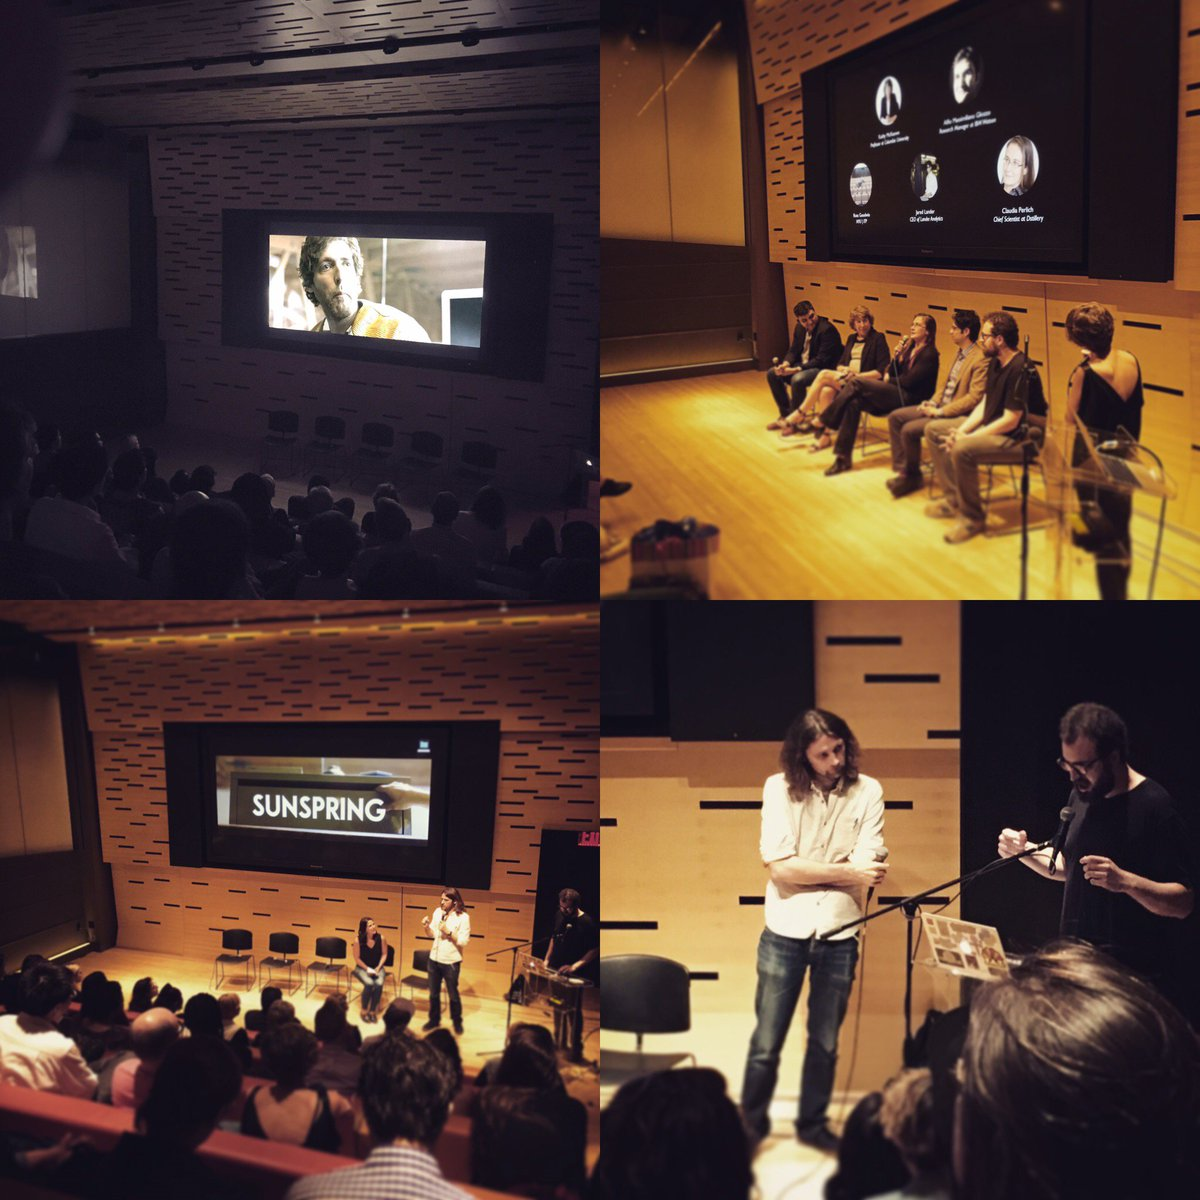 Wonderful evening @FilmLinc discussing the Art of #AI where machine learning & storytelling collide. #sherlock #IoT https://t.co/SjstZGCcwi